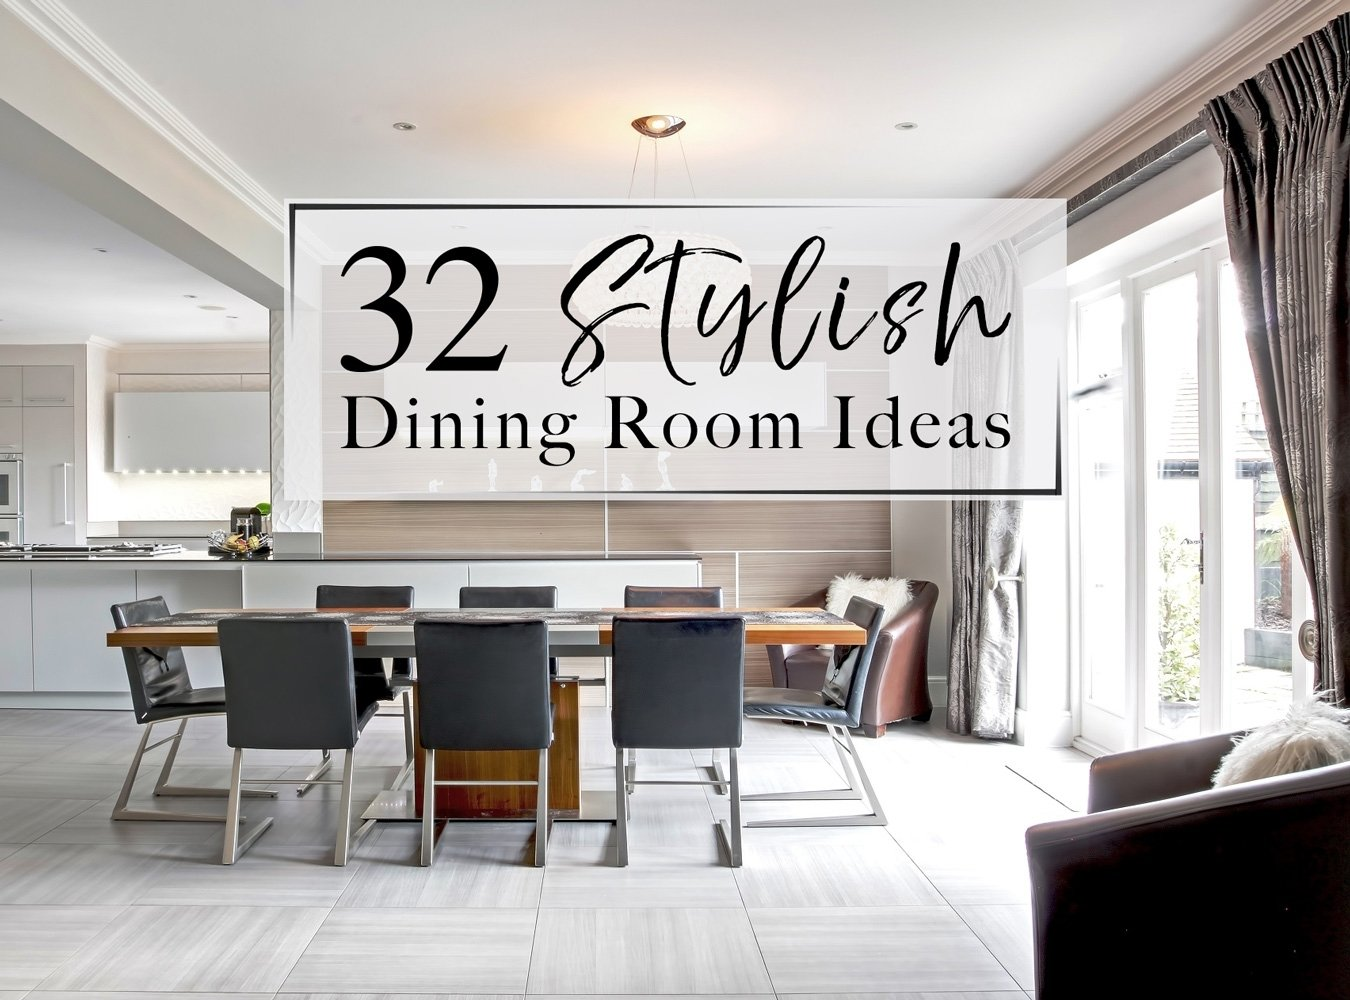 10 Fashionable Dining Room Decor Ideas Pictures 32 stylish dining room ideas to impress your dinner guests the luxpad